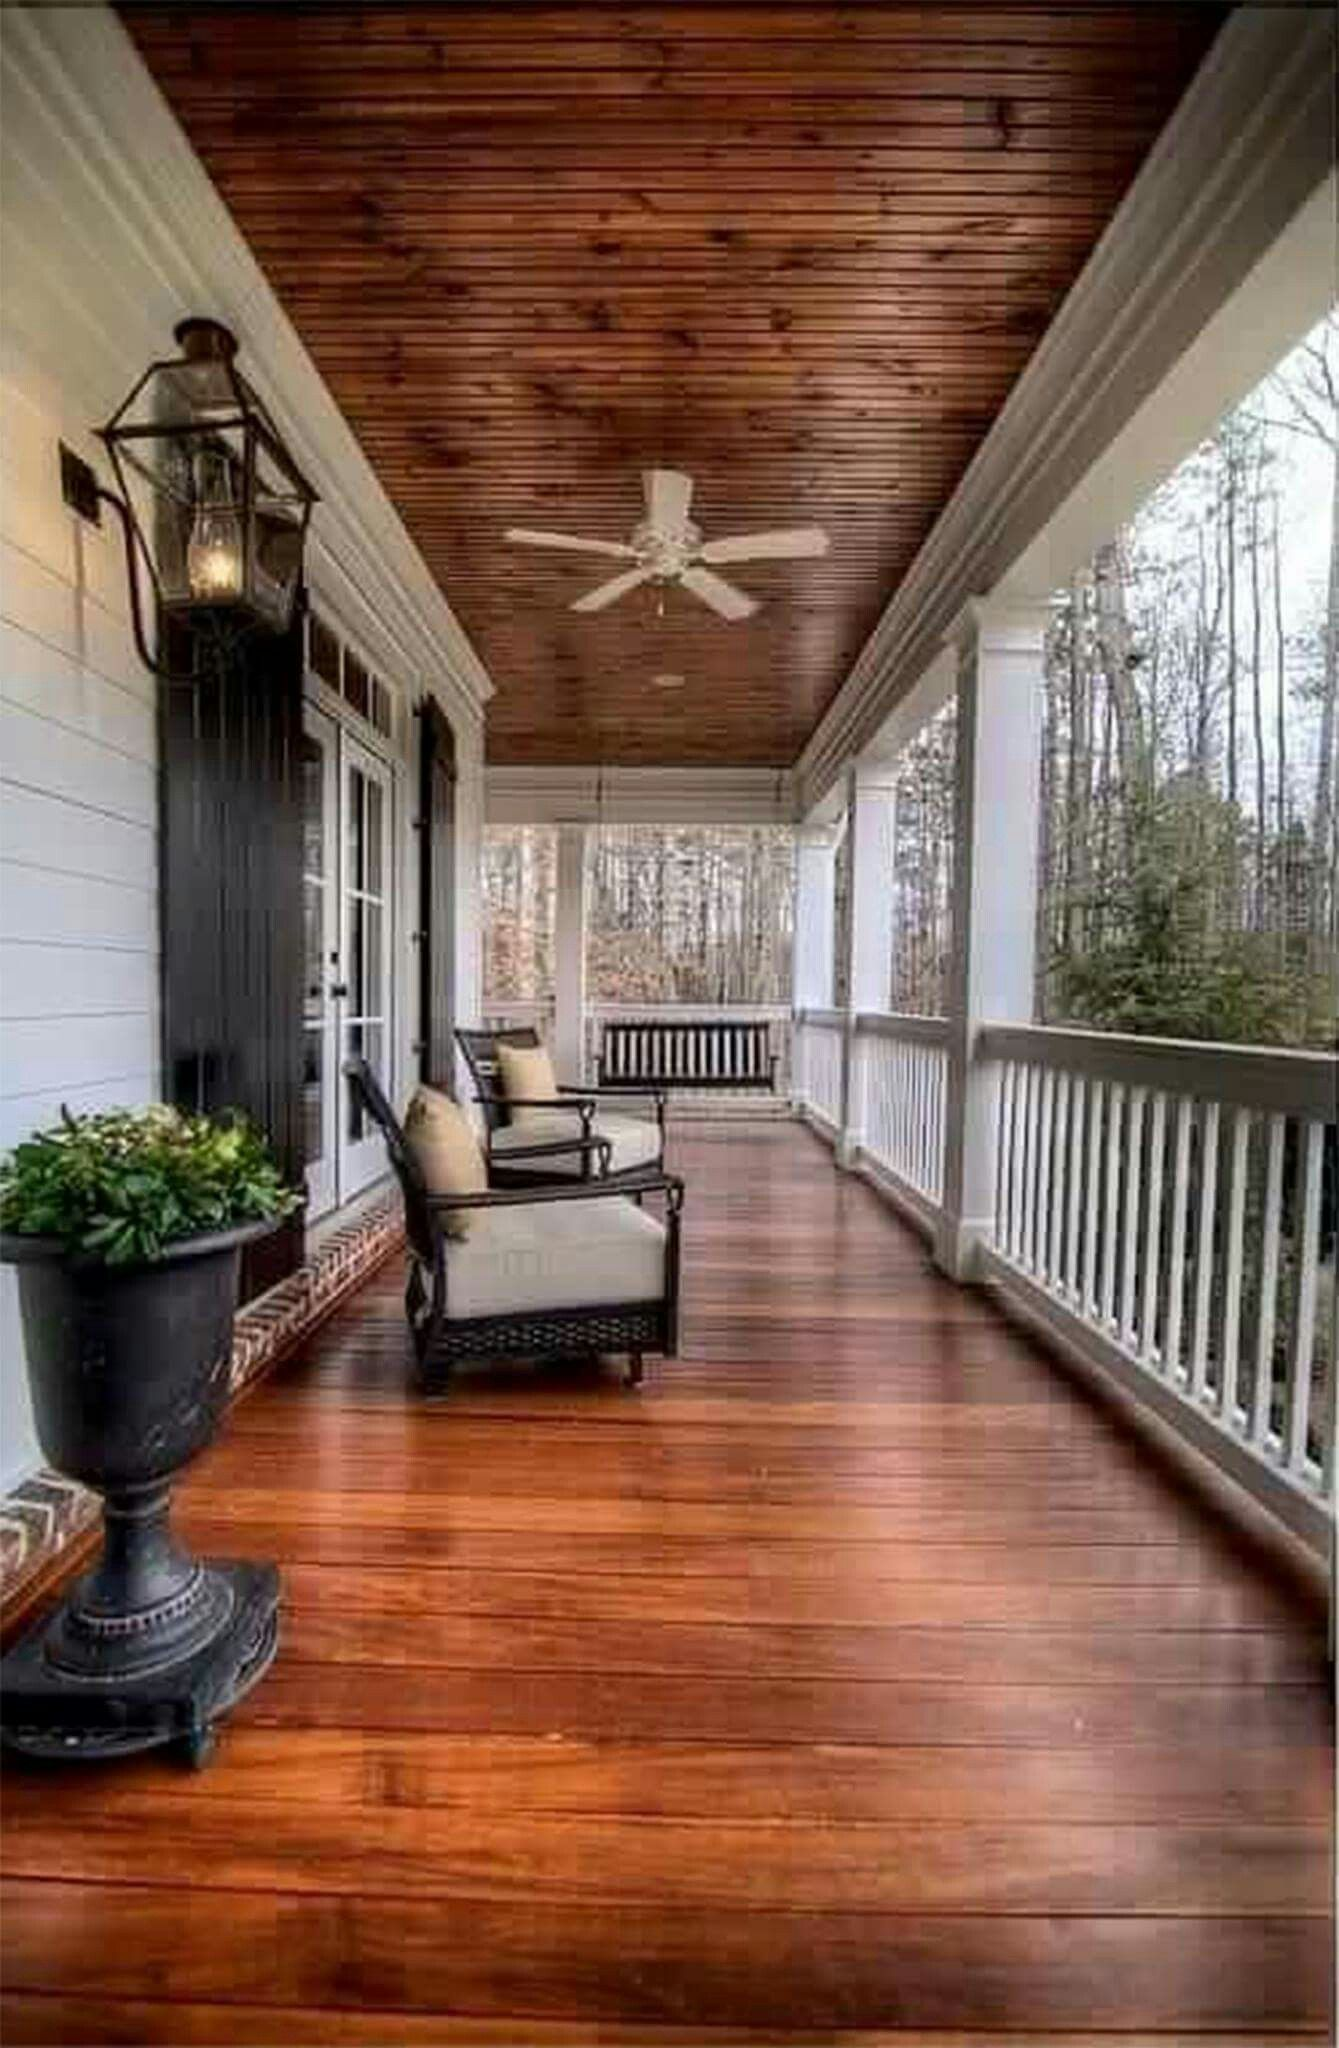 beautiful front porch a girl can dream in 2019 on beautiful modern farmhouse trending exterior design ideas id=84579